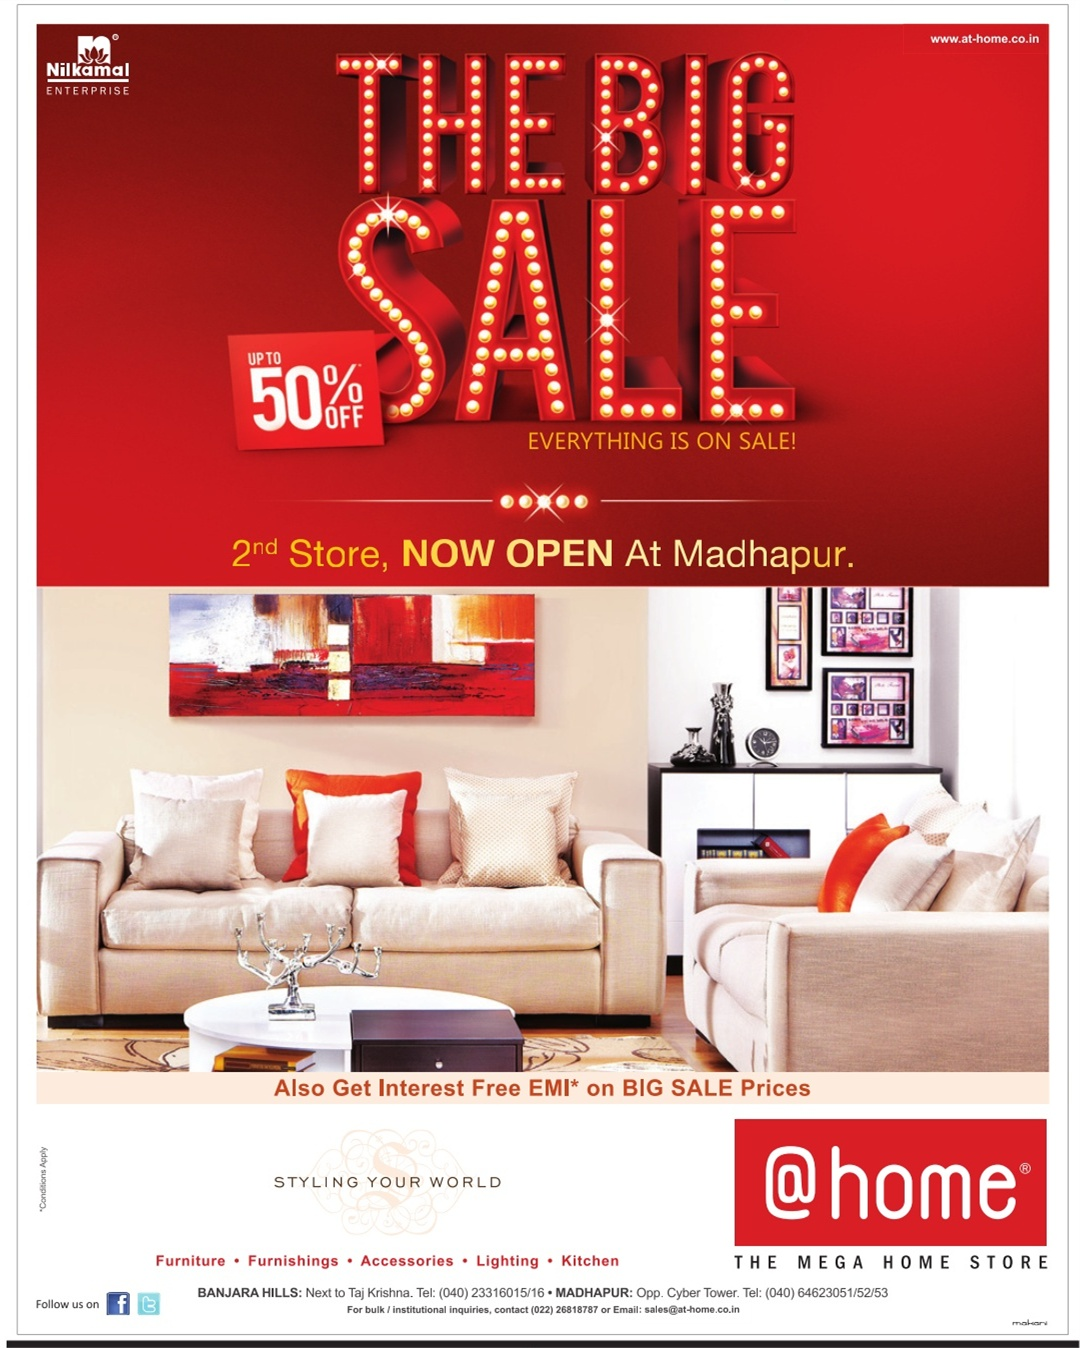 Sale Furniture Stores: THE BIG SALE UPTO 50% OFF On FURNITURE At @home, Hyderabad